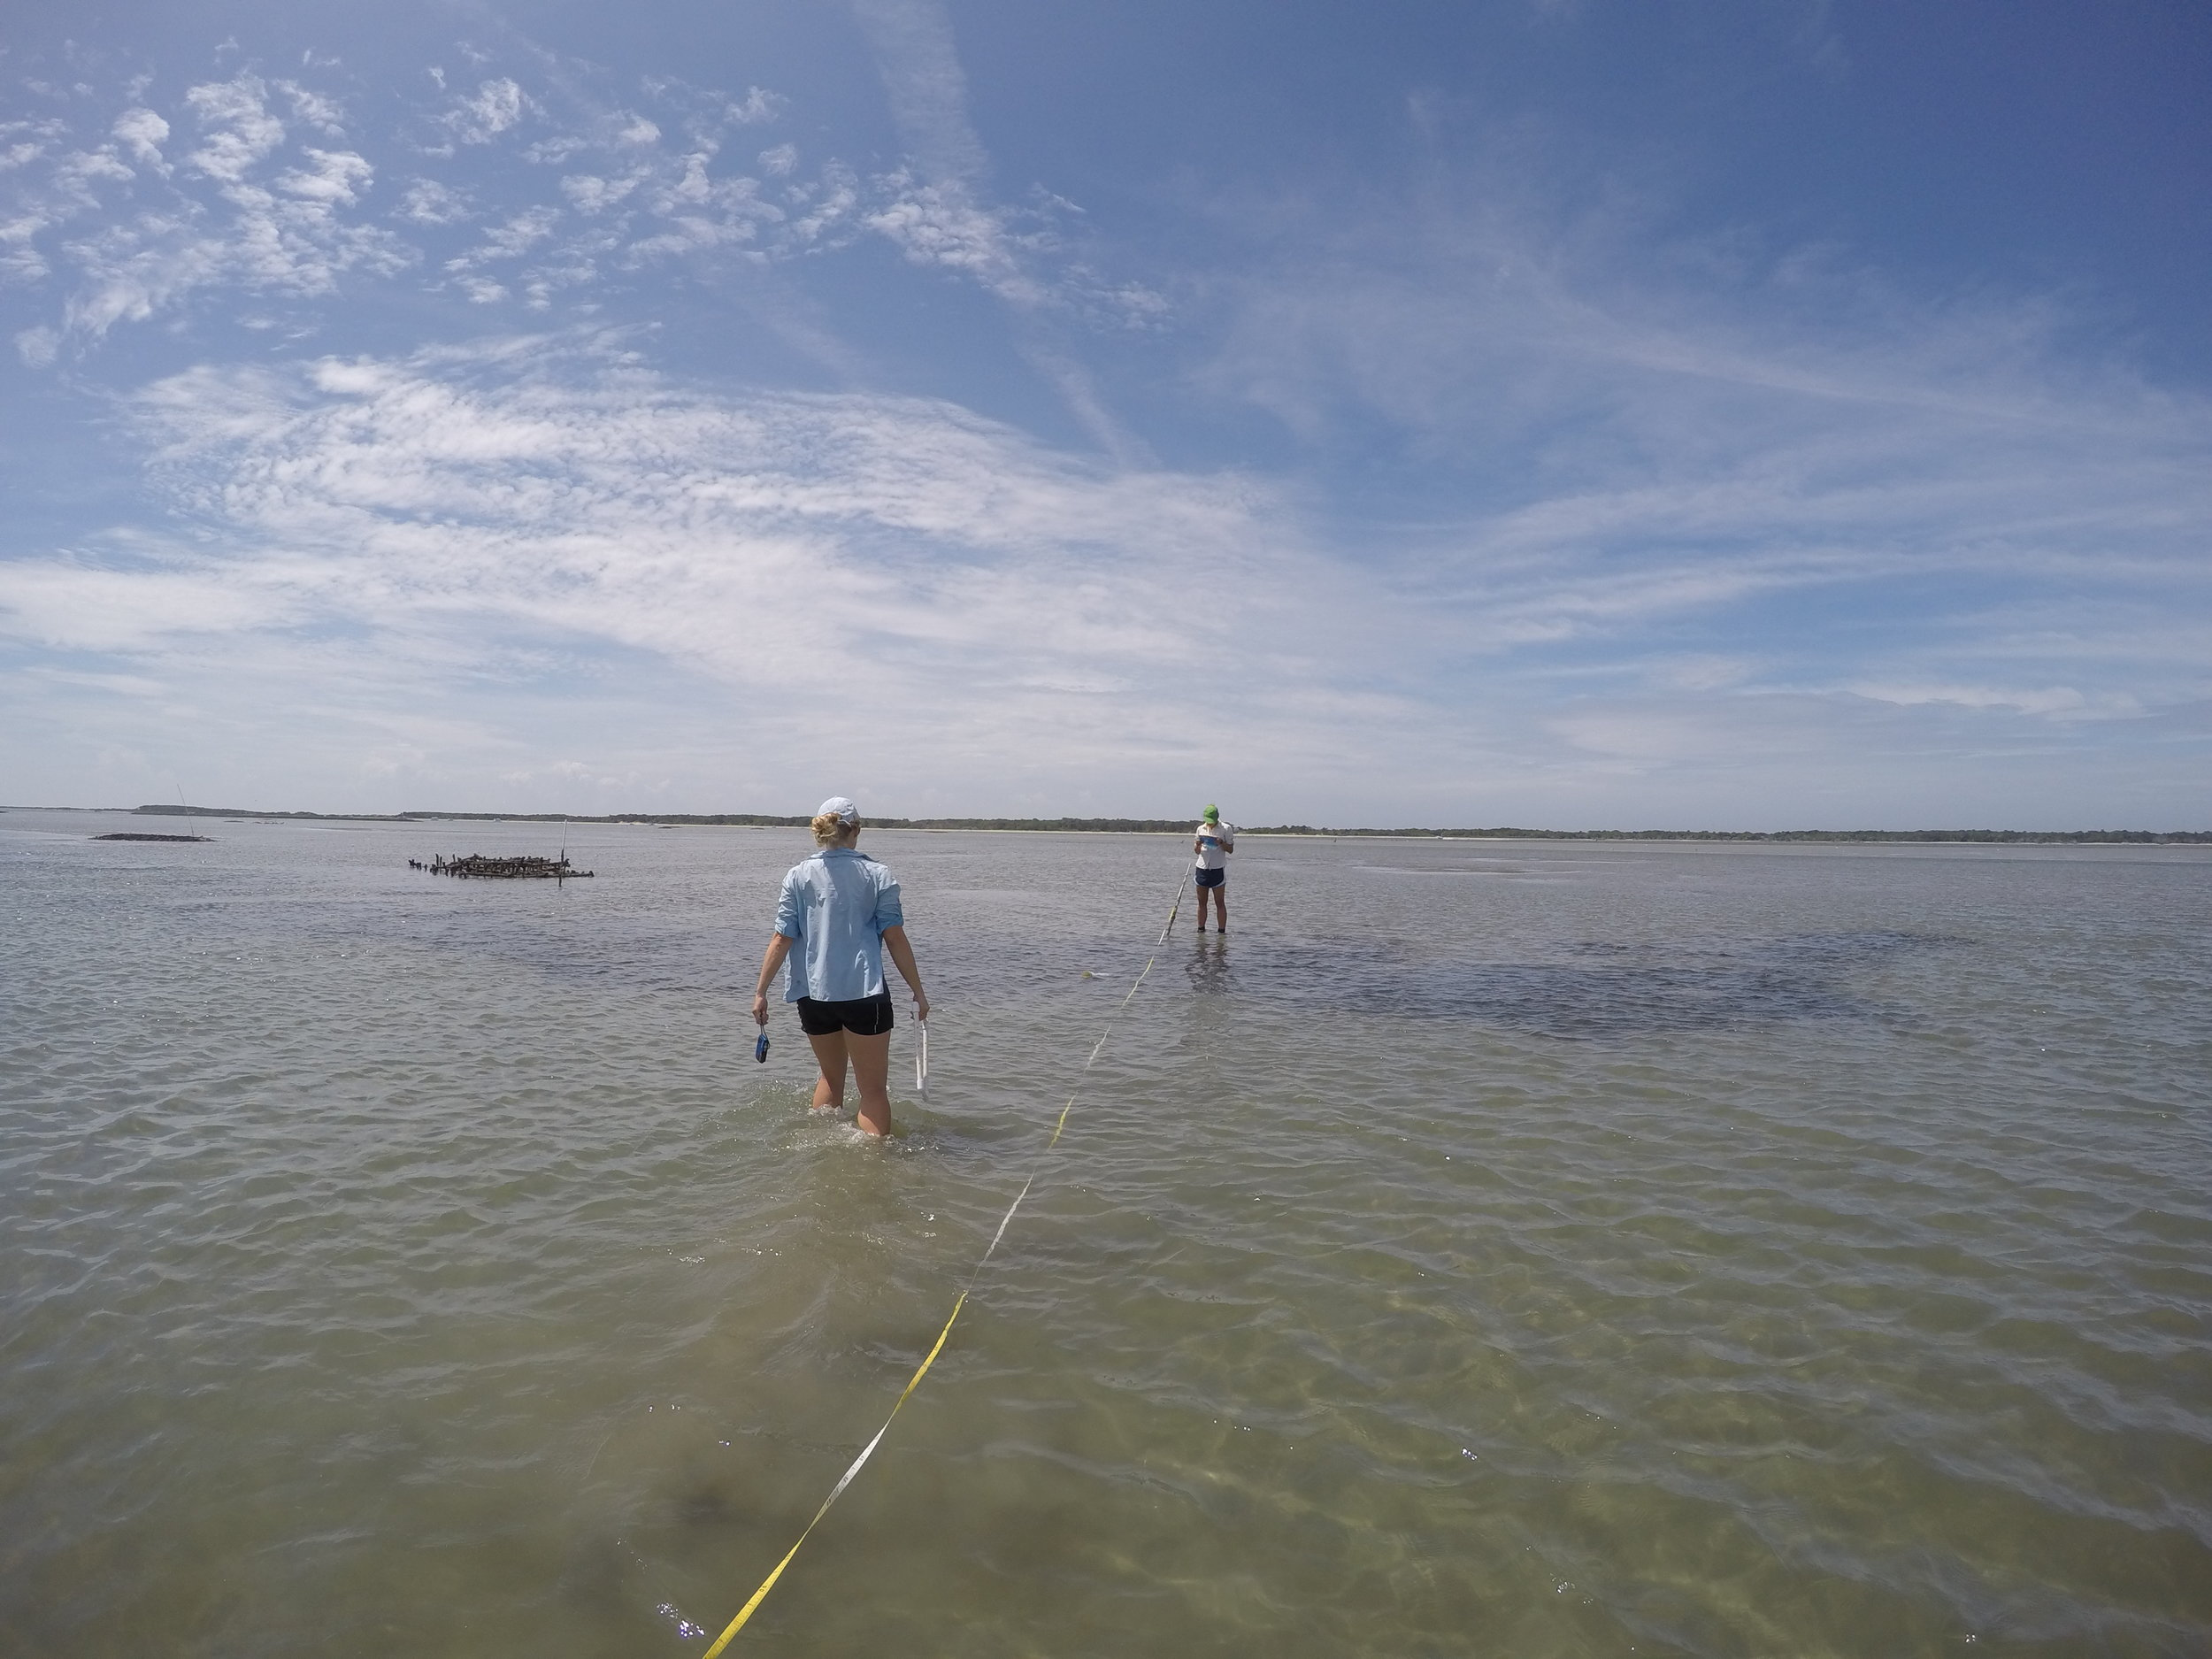 Monitoring seagrass beds in NC to determine how restoring oyster reefs adjacent to existing seagrass beds affects seagrass biomass with Dr. Rachel Gittman.